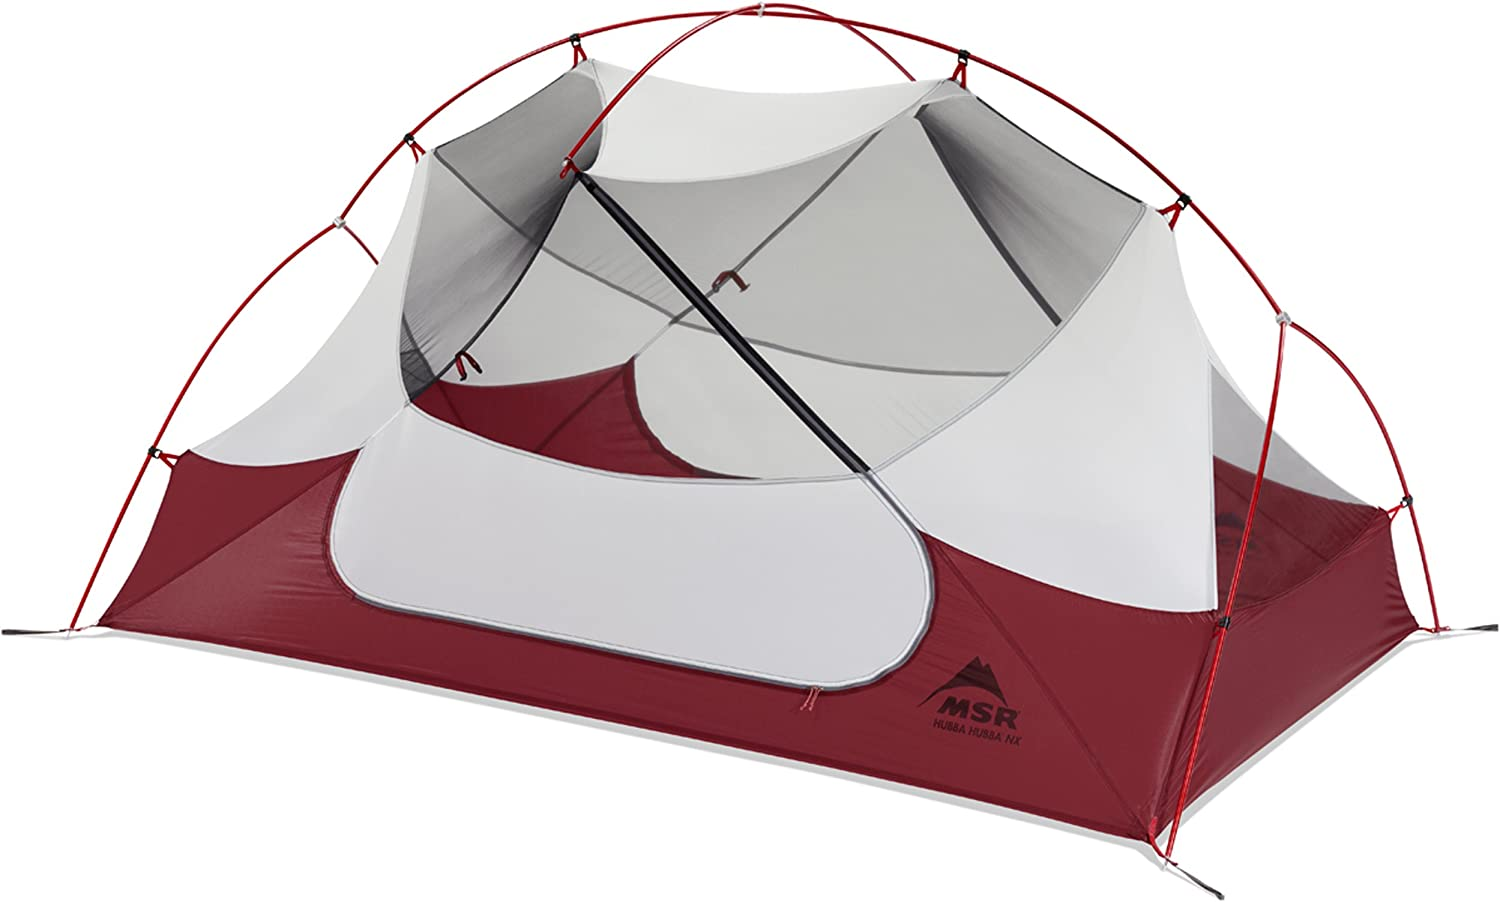 MSR Hubba Hubba NX 2 Person Lightweight Backpacking Tent